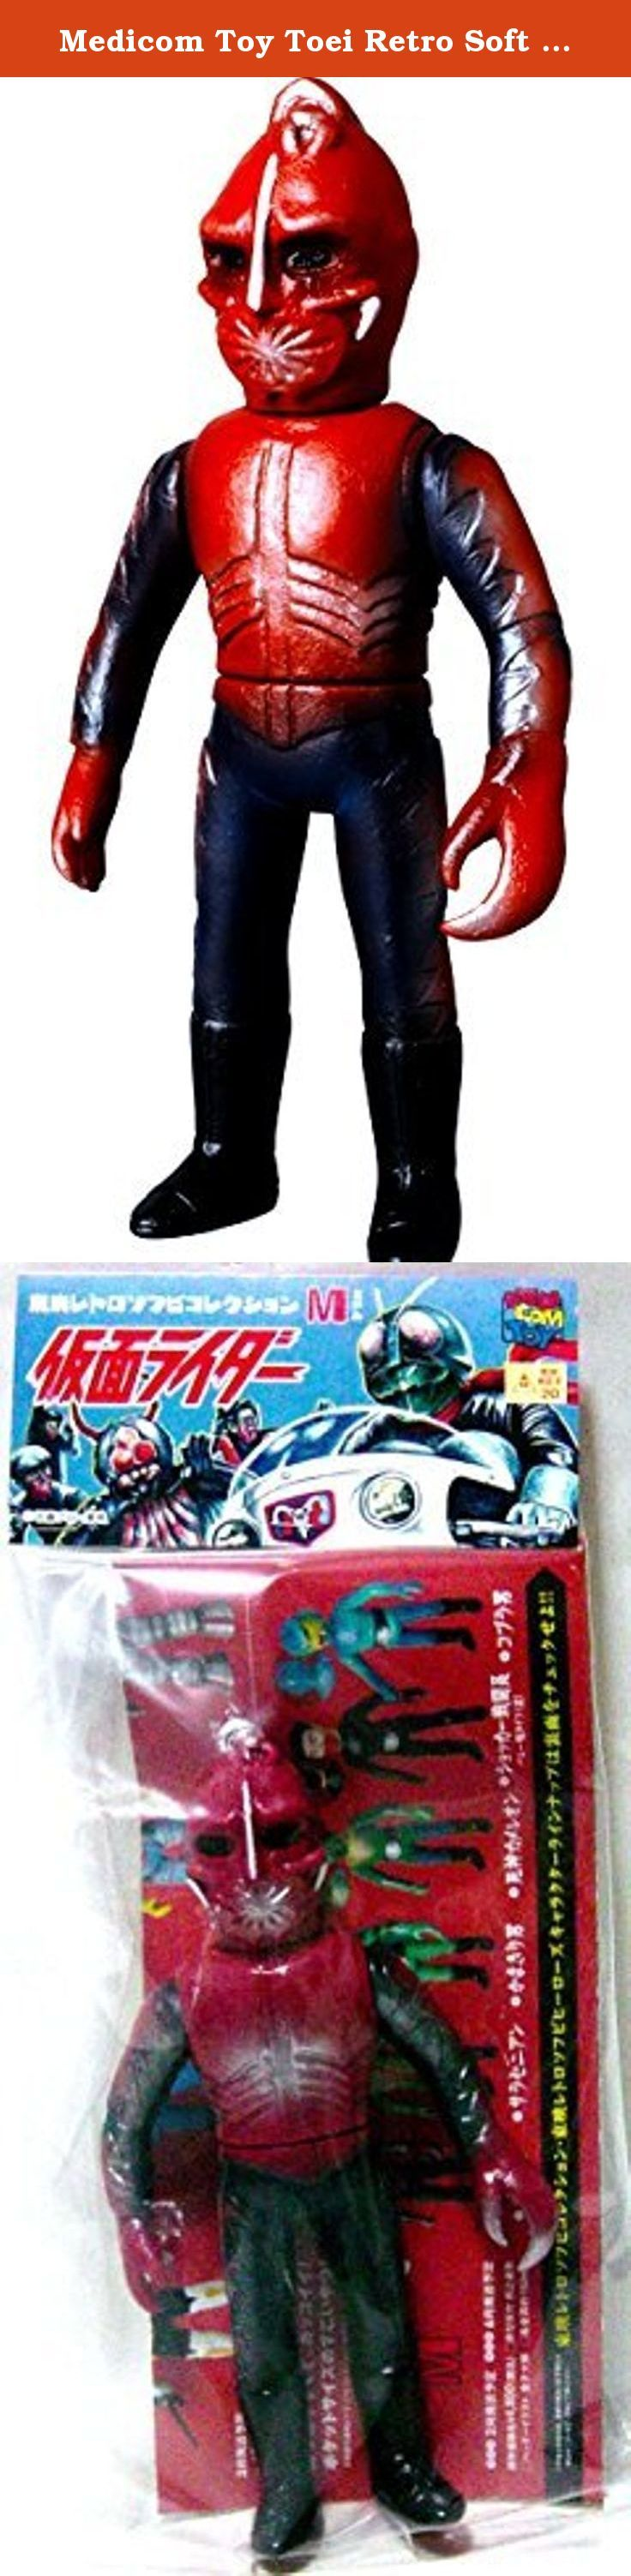 Medicom Toy Toei Retro Soft Vinyl Collection M Scorpio man. It's shipped off from Japan.